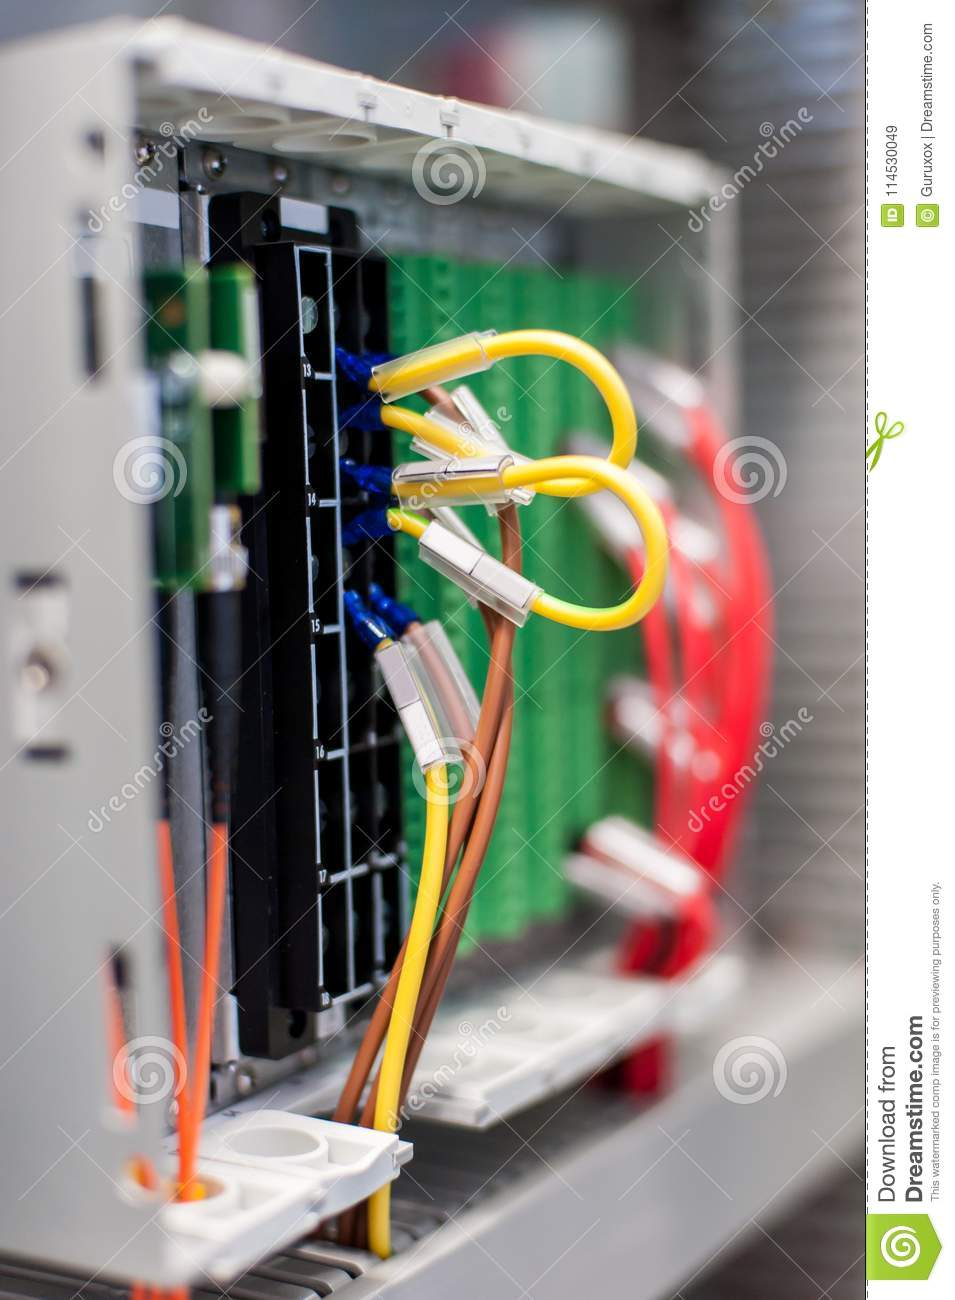 close up electrical installations and wires on relay protection rh dreamstime com Electrical Circuit Schematic Electrical Energy